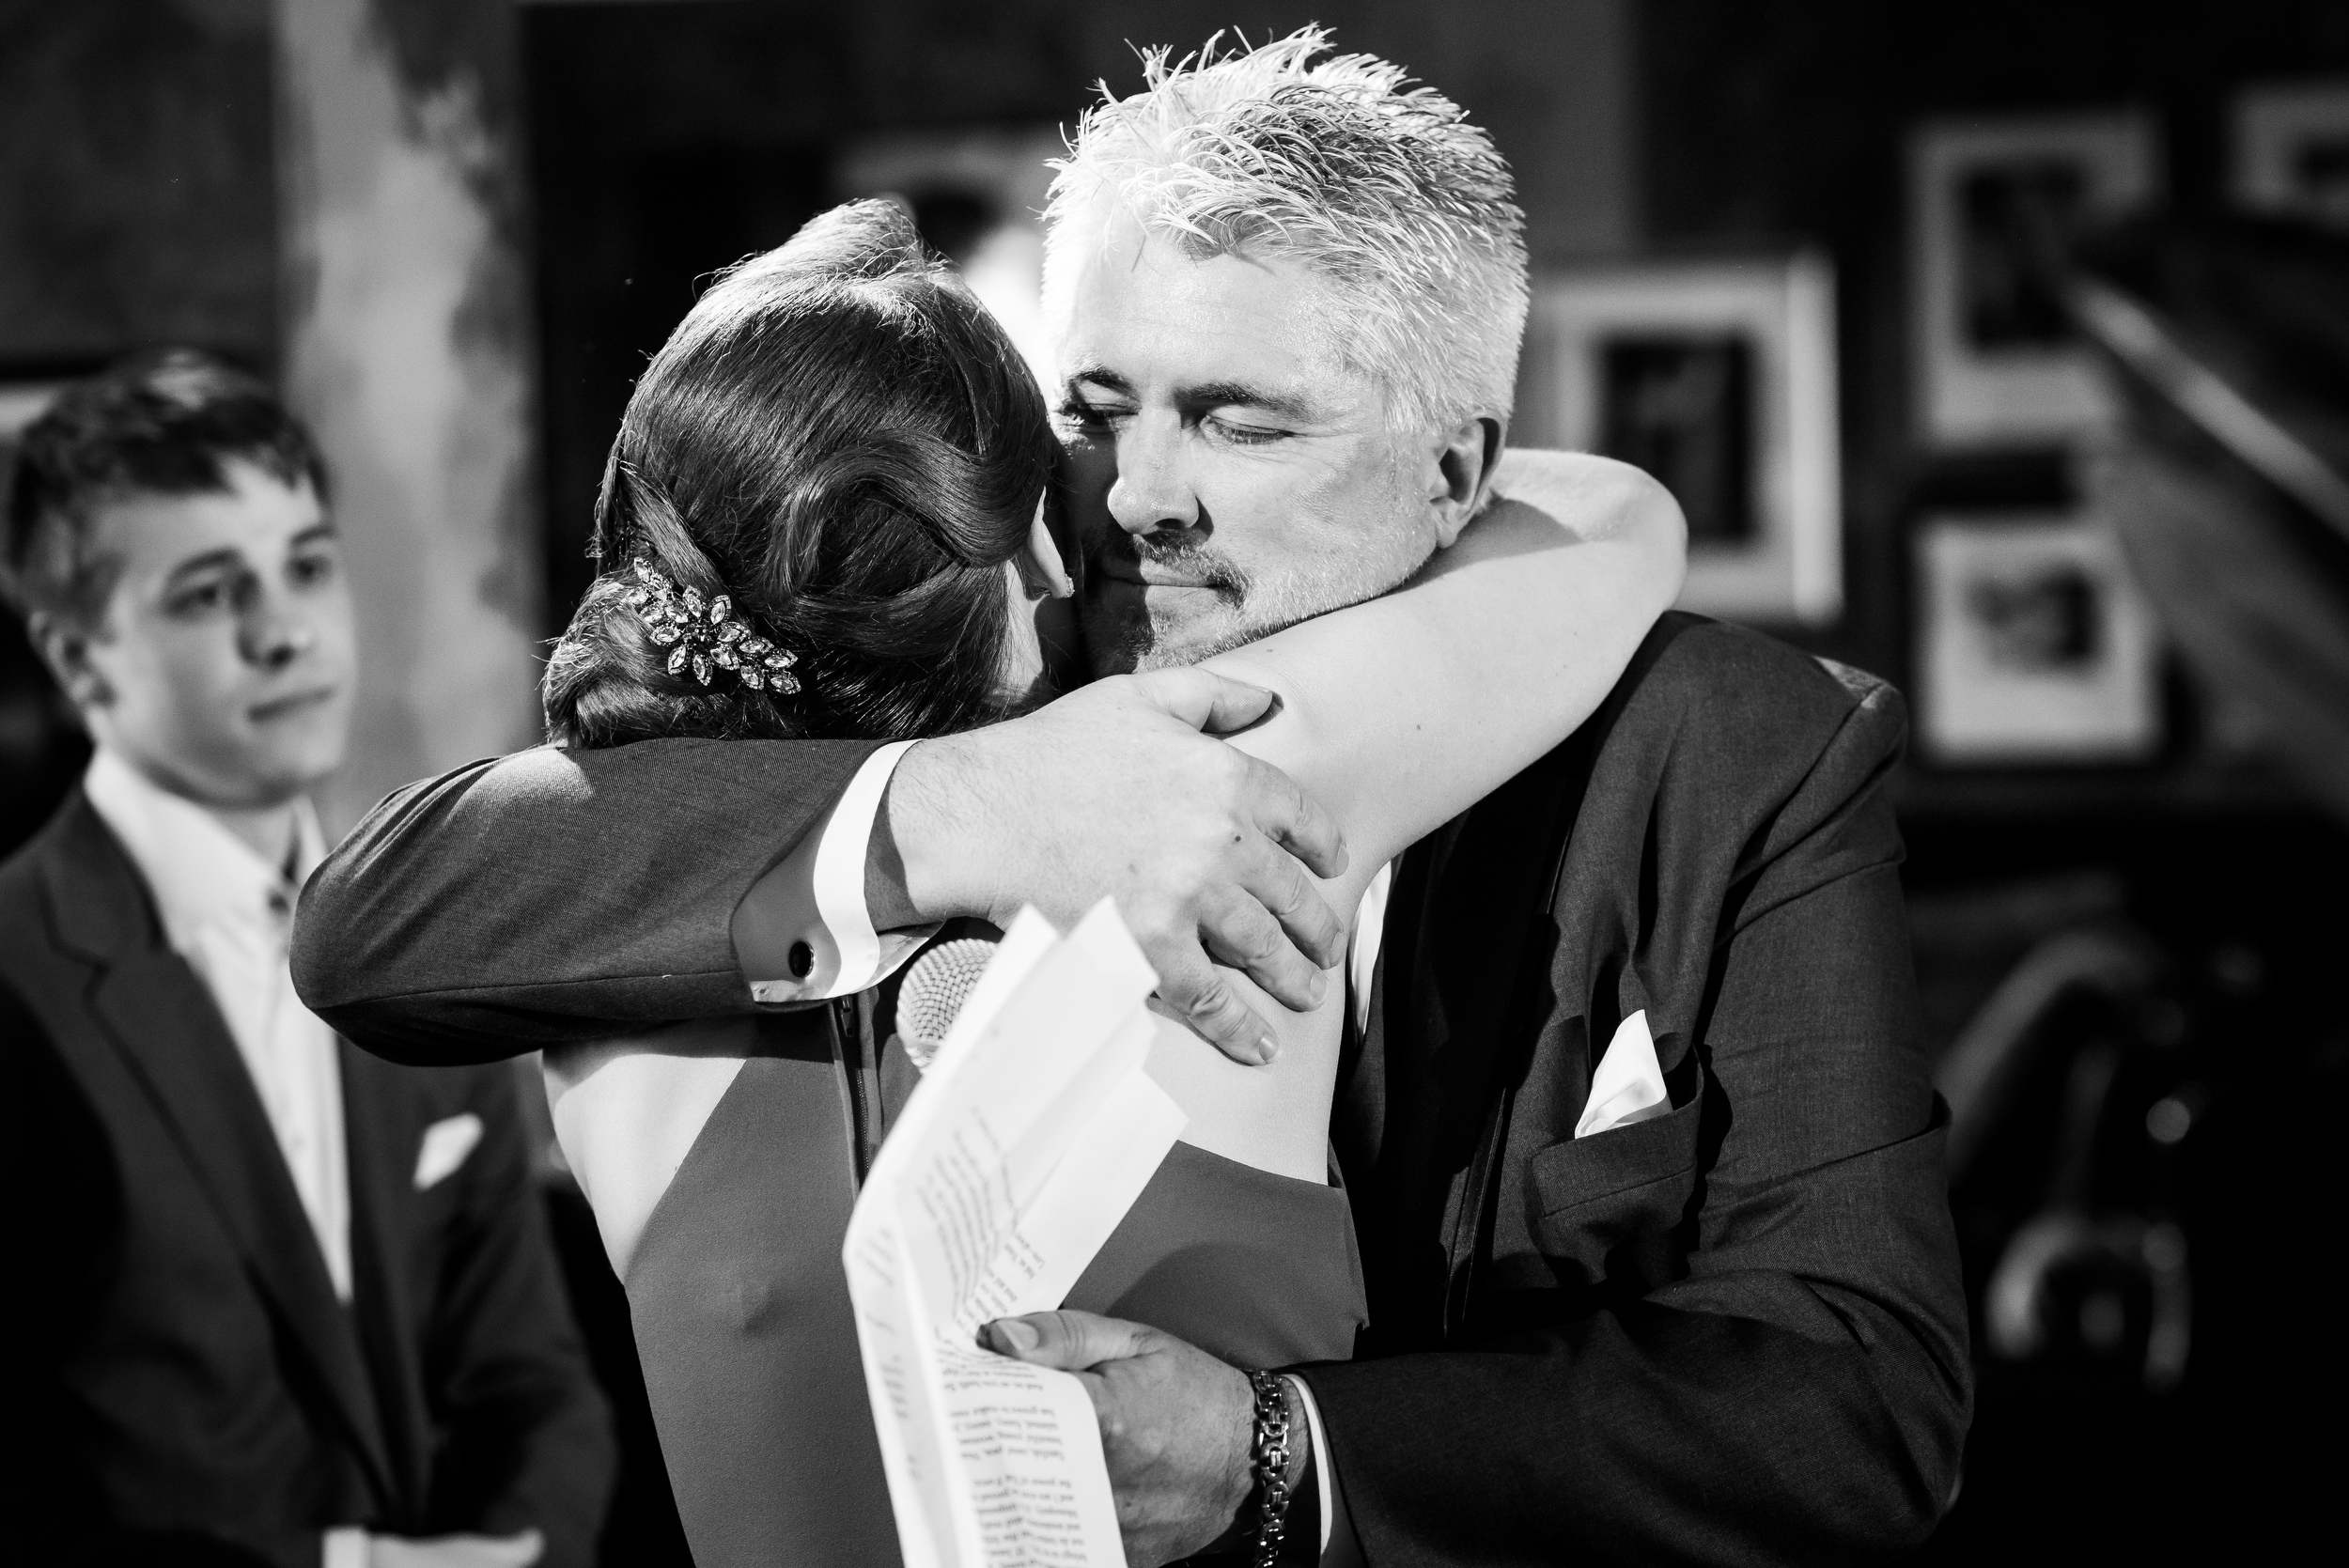 Father of the bride and the bride sharing a hug: Carnivale Chicago wedding captured by J Brown Photography